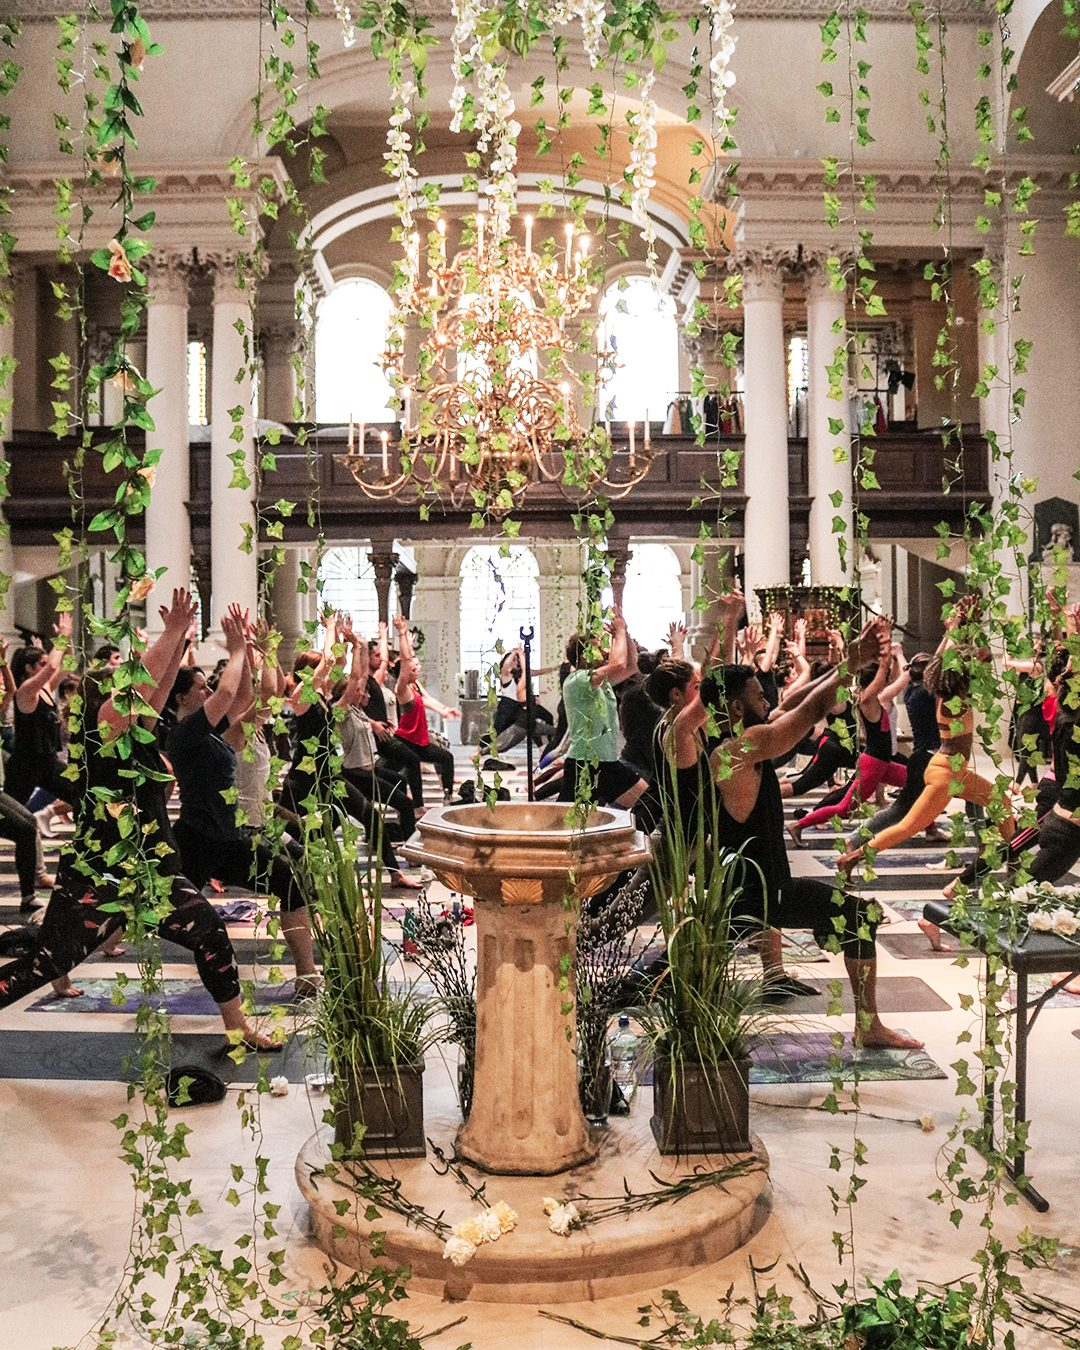 In a beautiful church a cascade of green vines hangs in front of an ornate font, whilst people do yoga in the background. Wellnerss, Gameplan A.